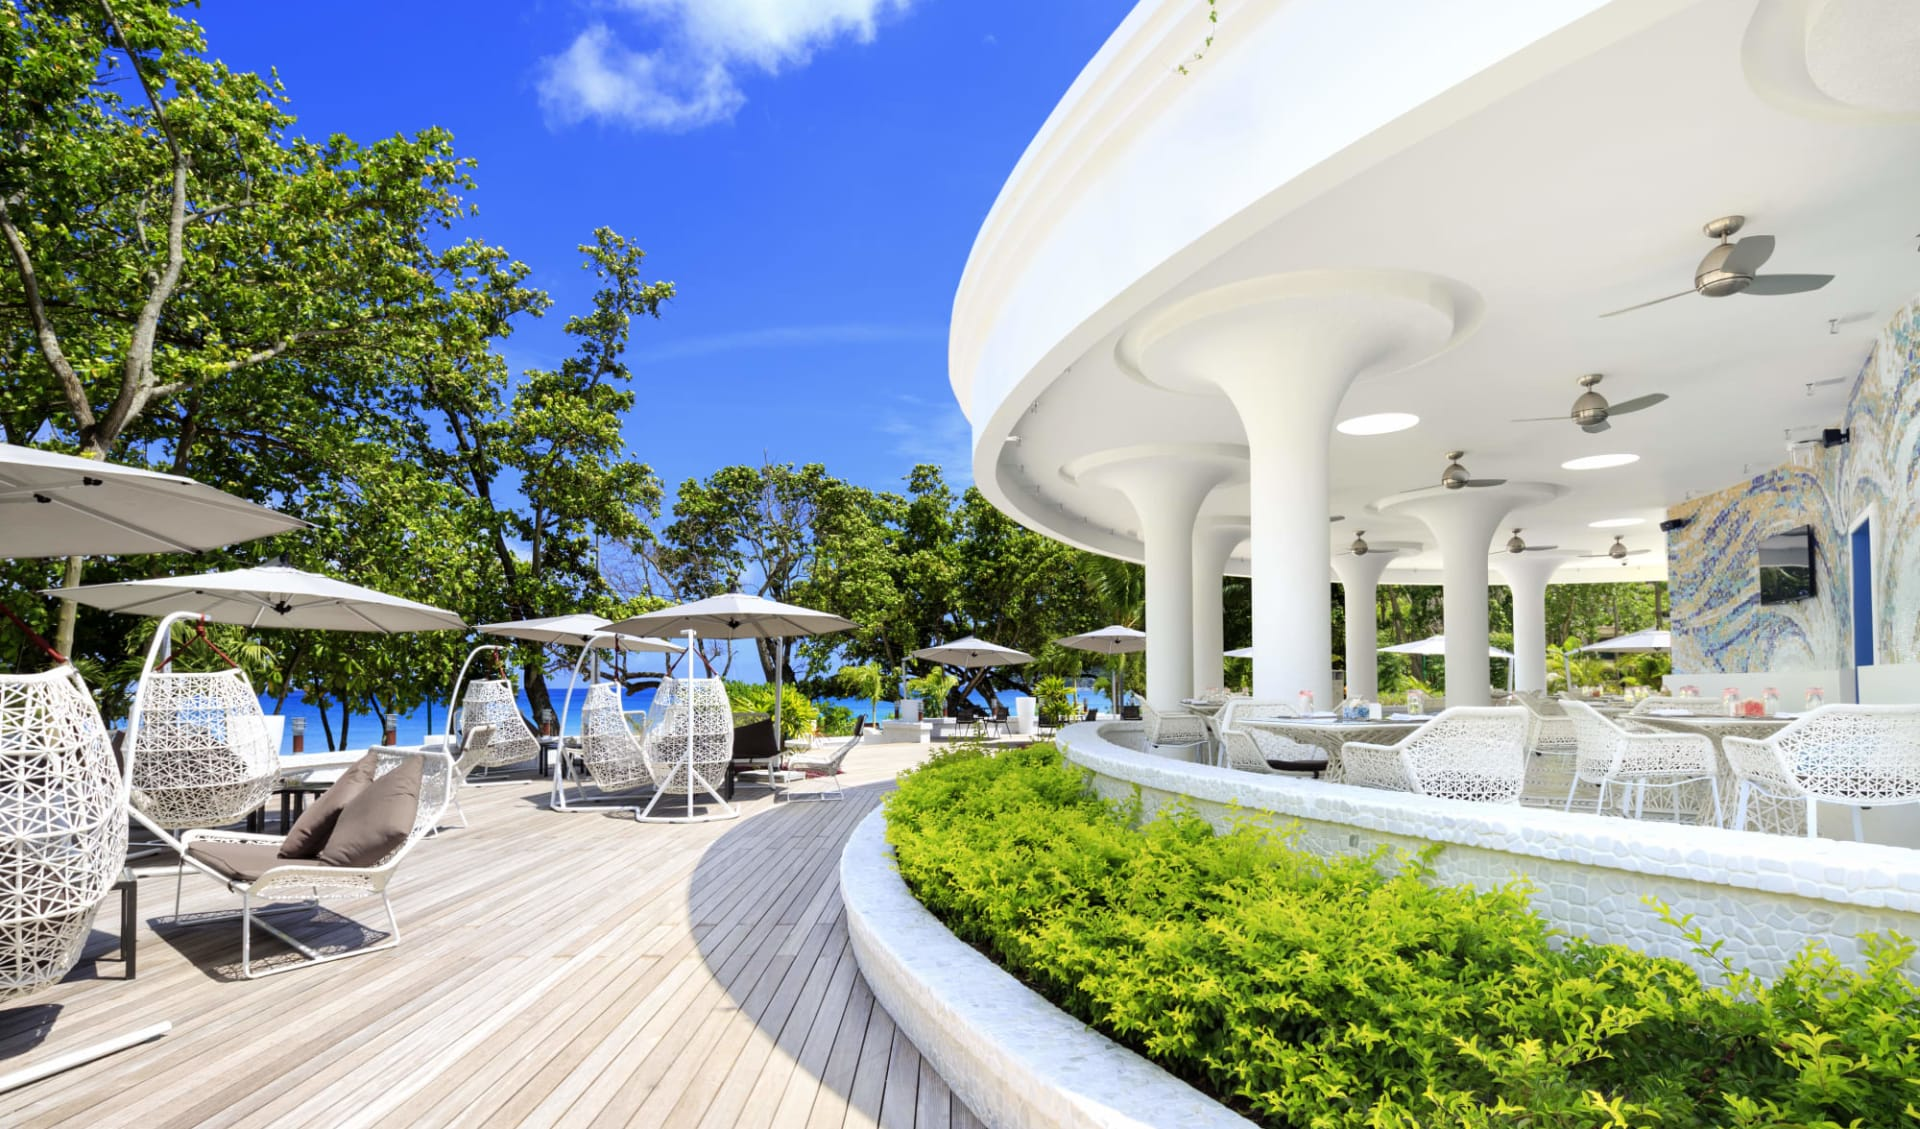 Savoy Seychelles Resort & Spa in Mahé: